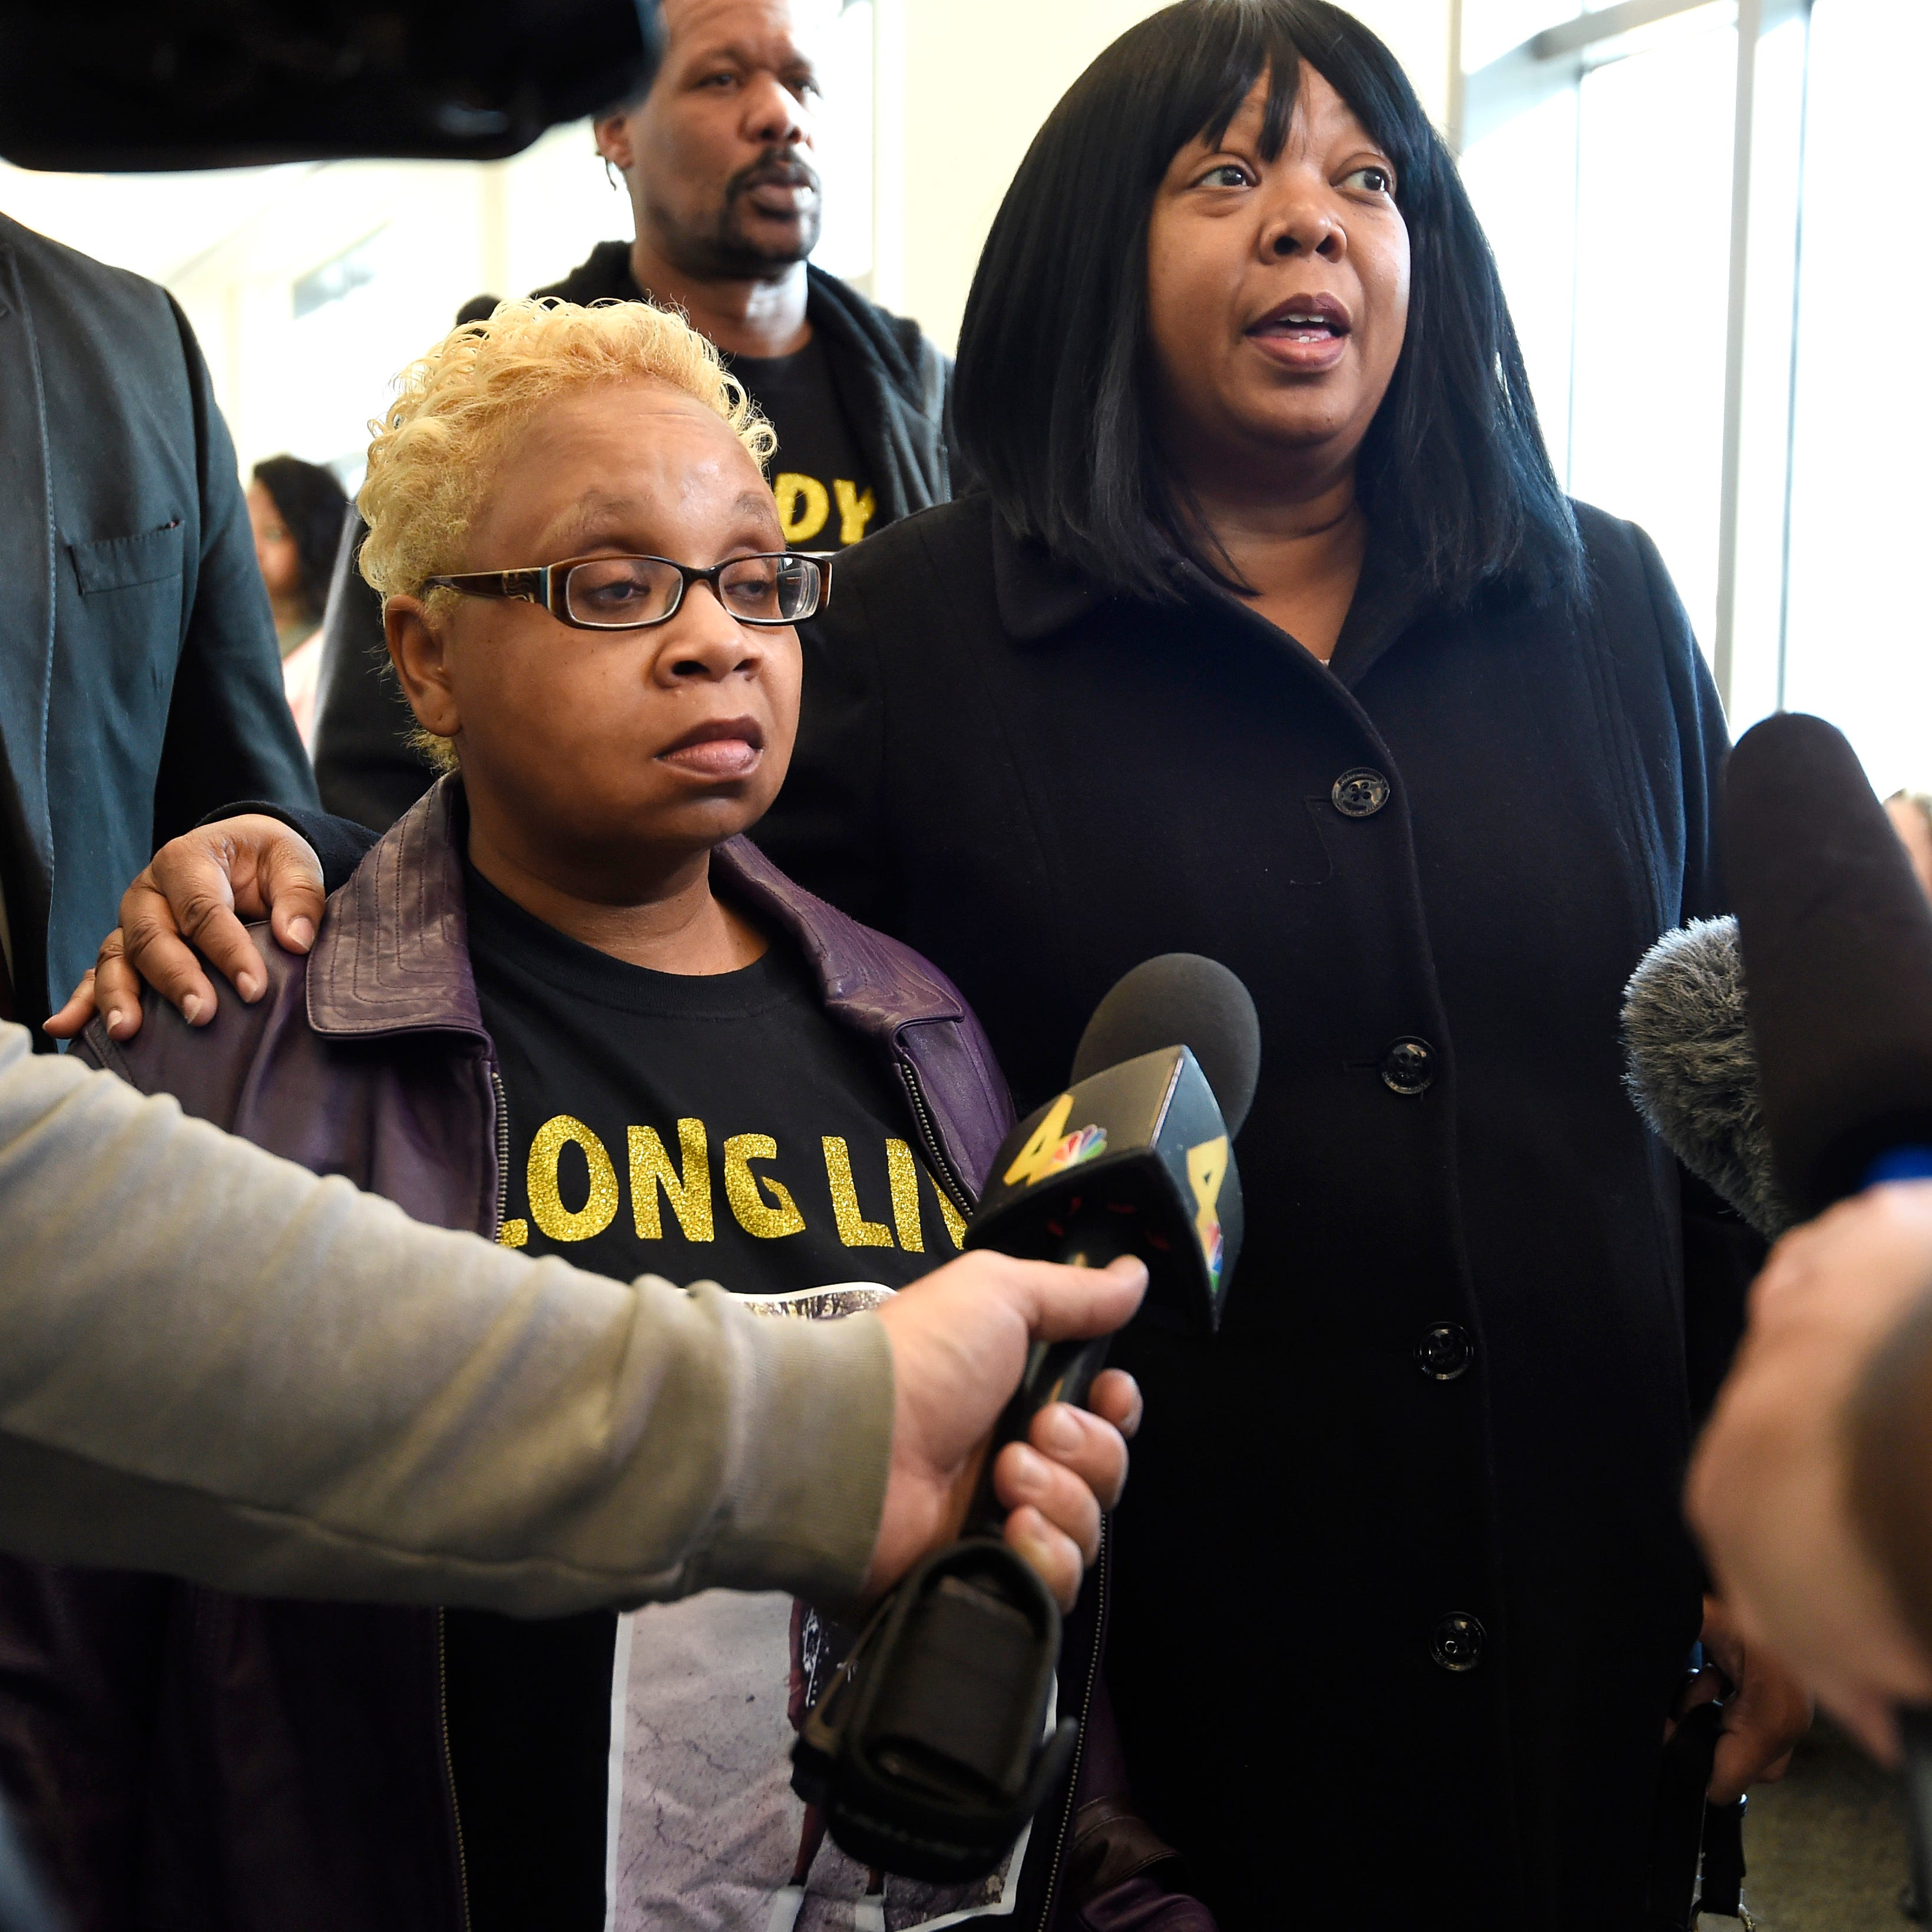 Family of Daniel Hambrick, man fatally shot by police officer, sues Nashville for $30 million